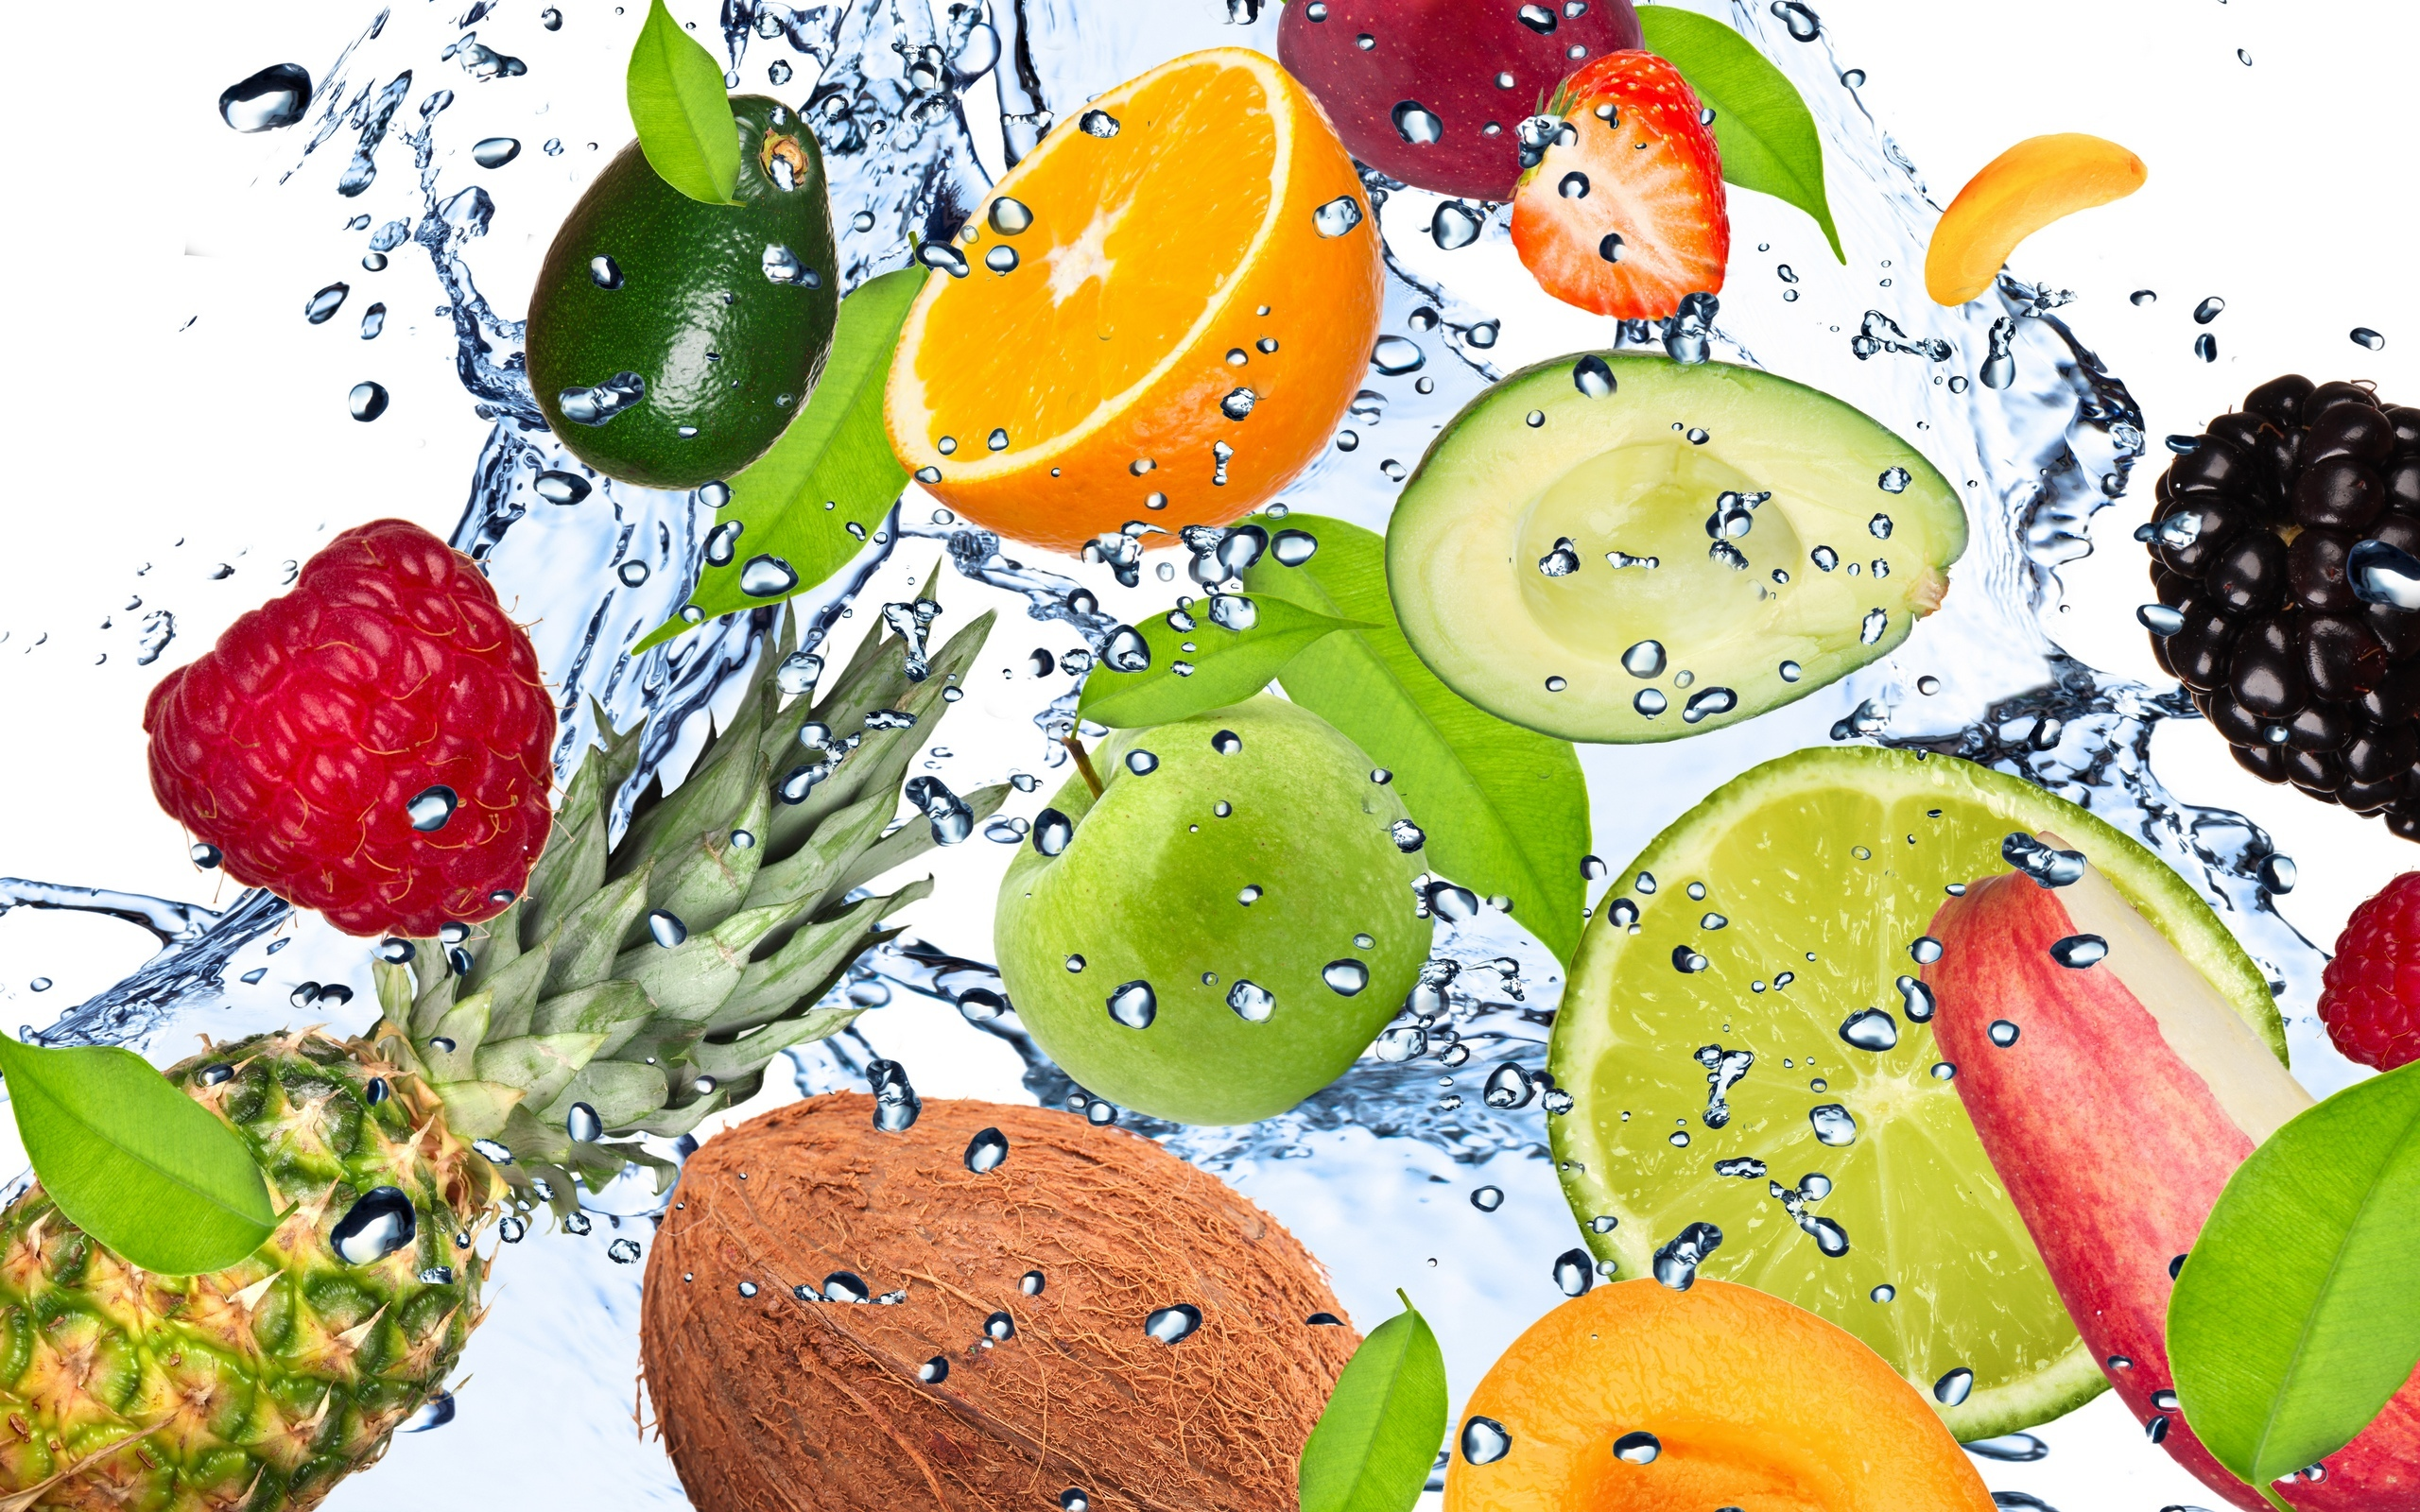 fresh fruits coonut orange apple water banana berries digital 2560x1600